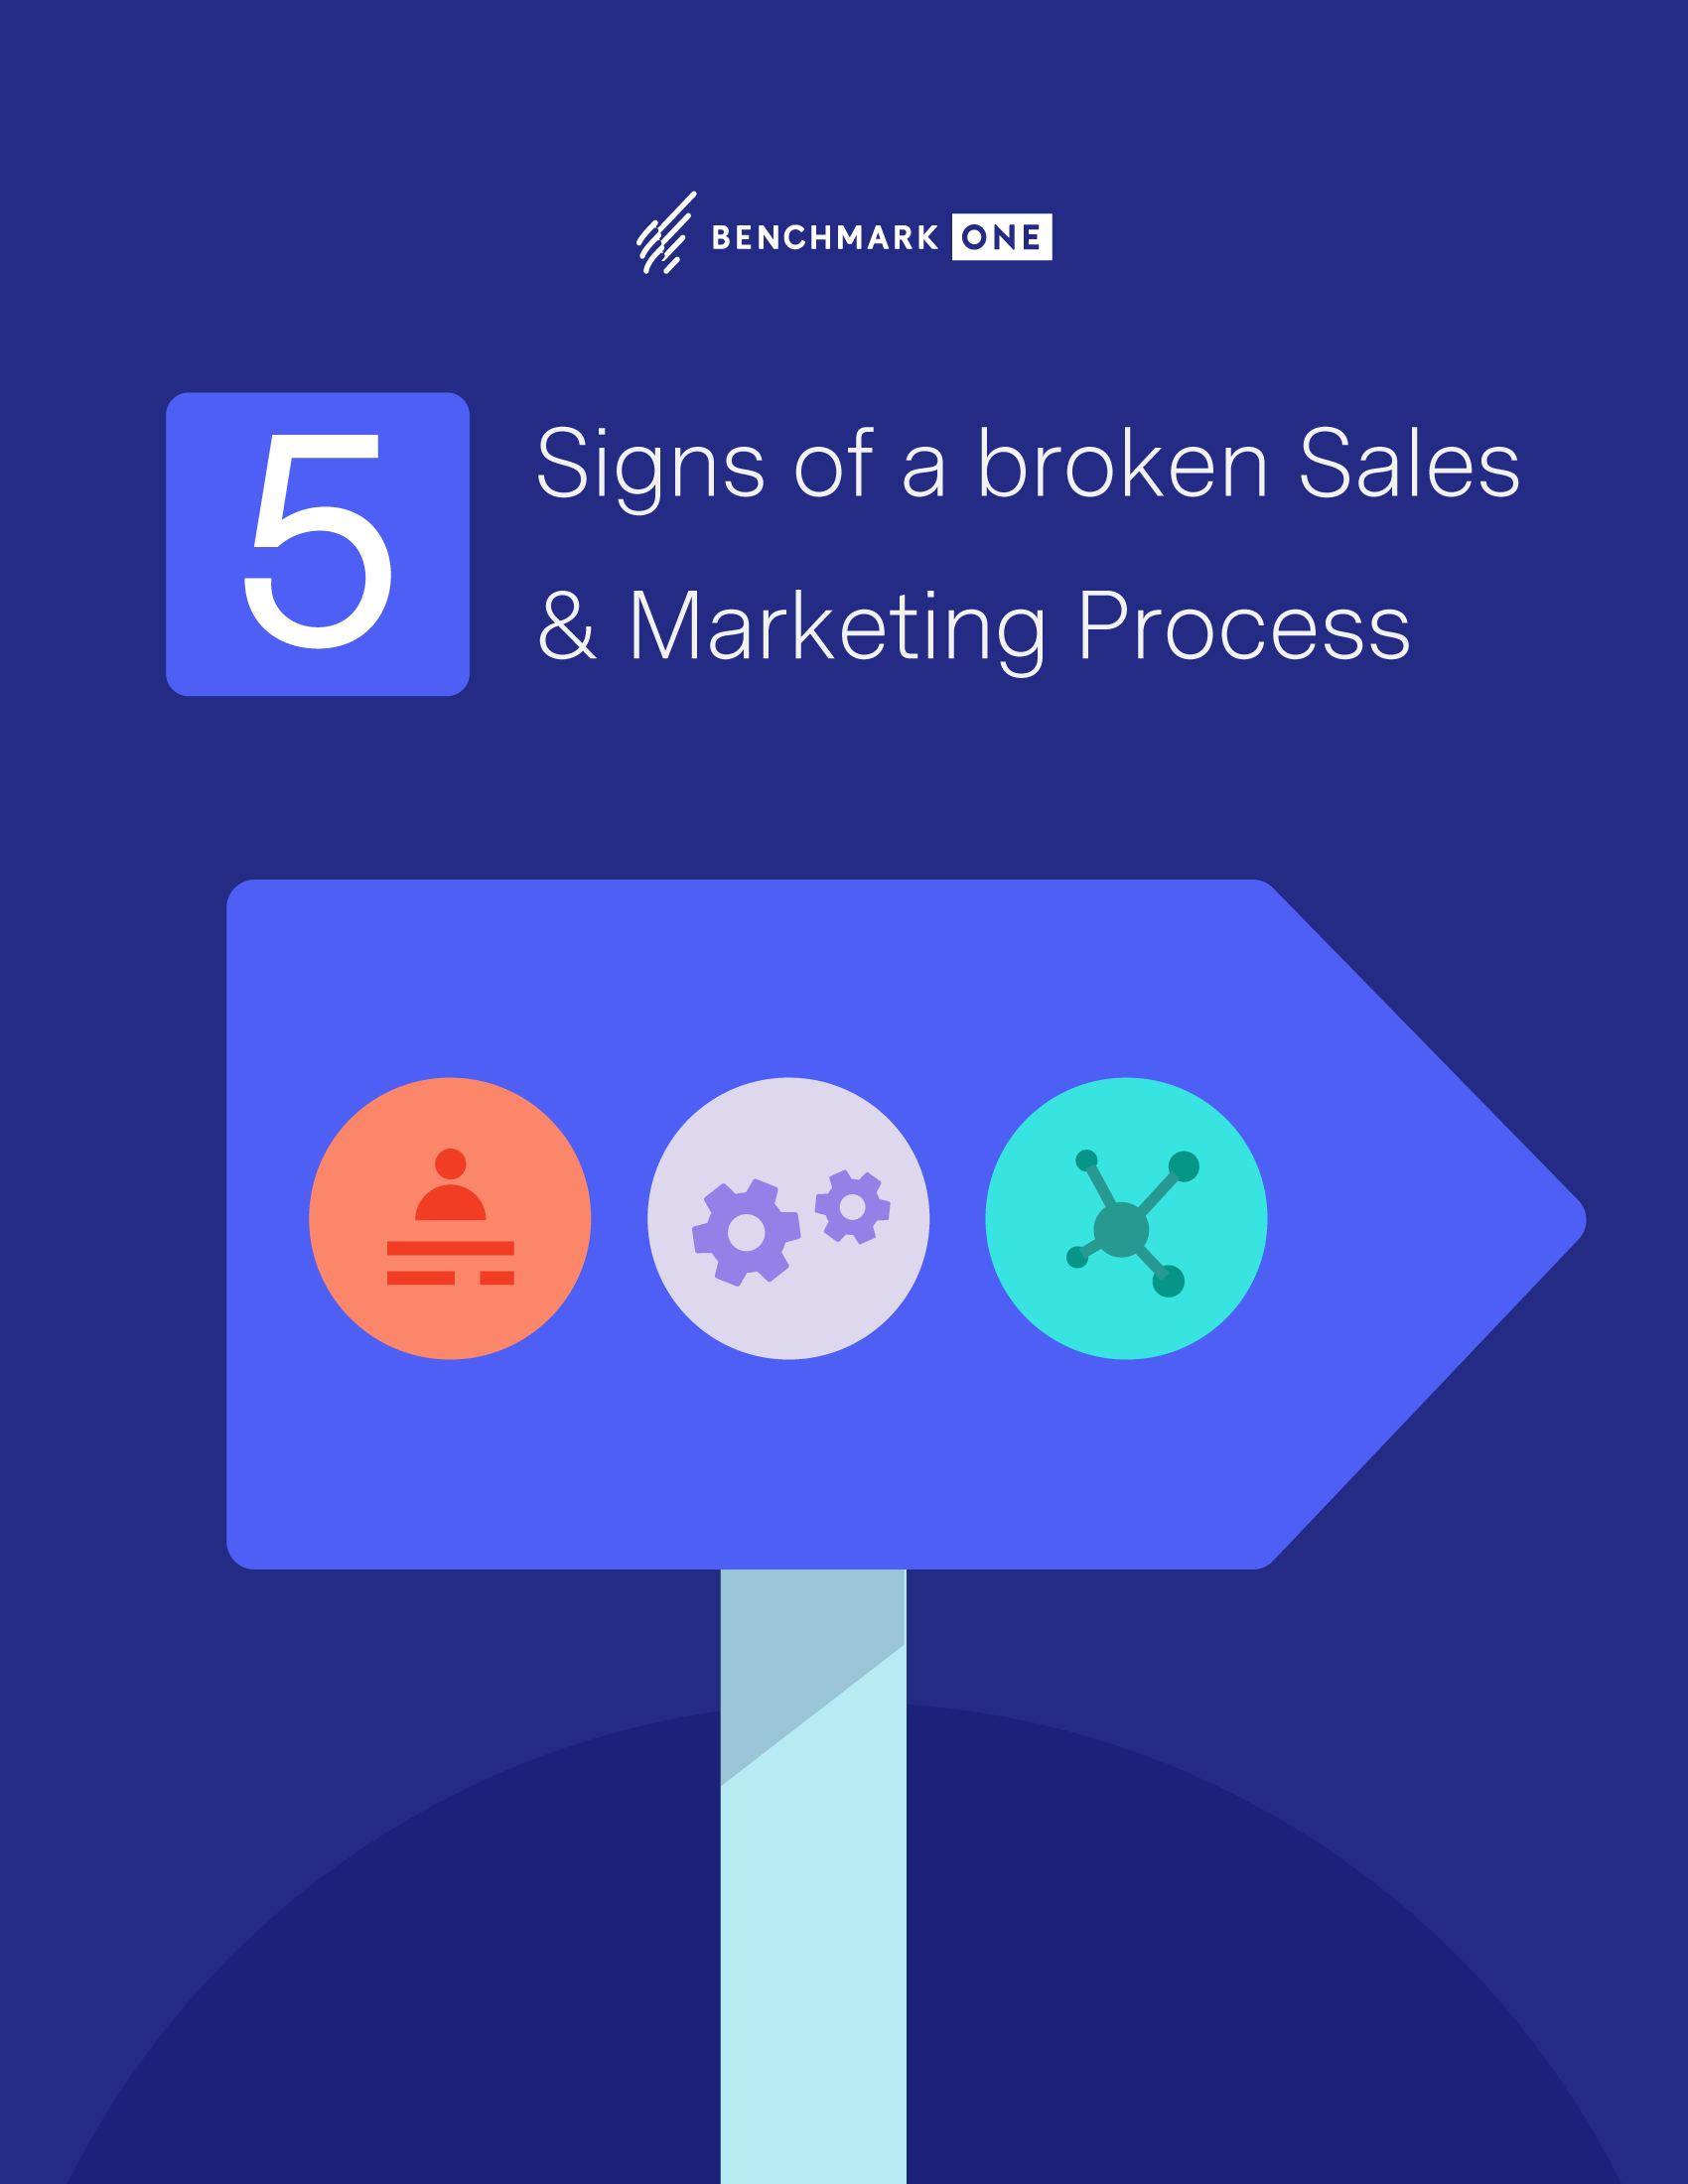 5-Signs-of-a-Broken-Sales-and-Marketing-Process